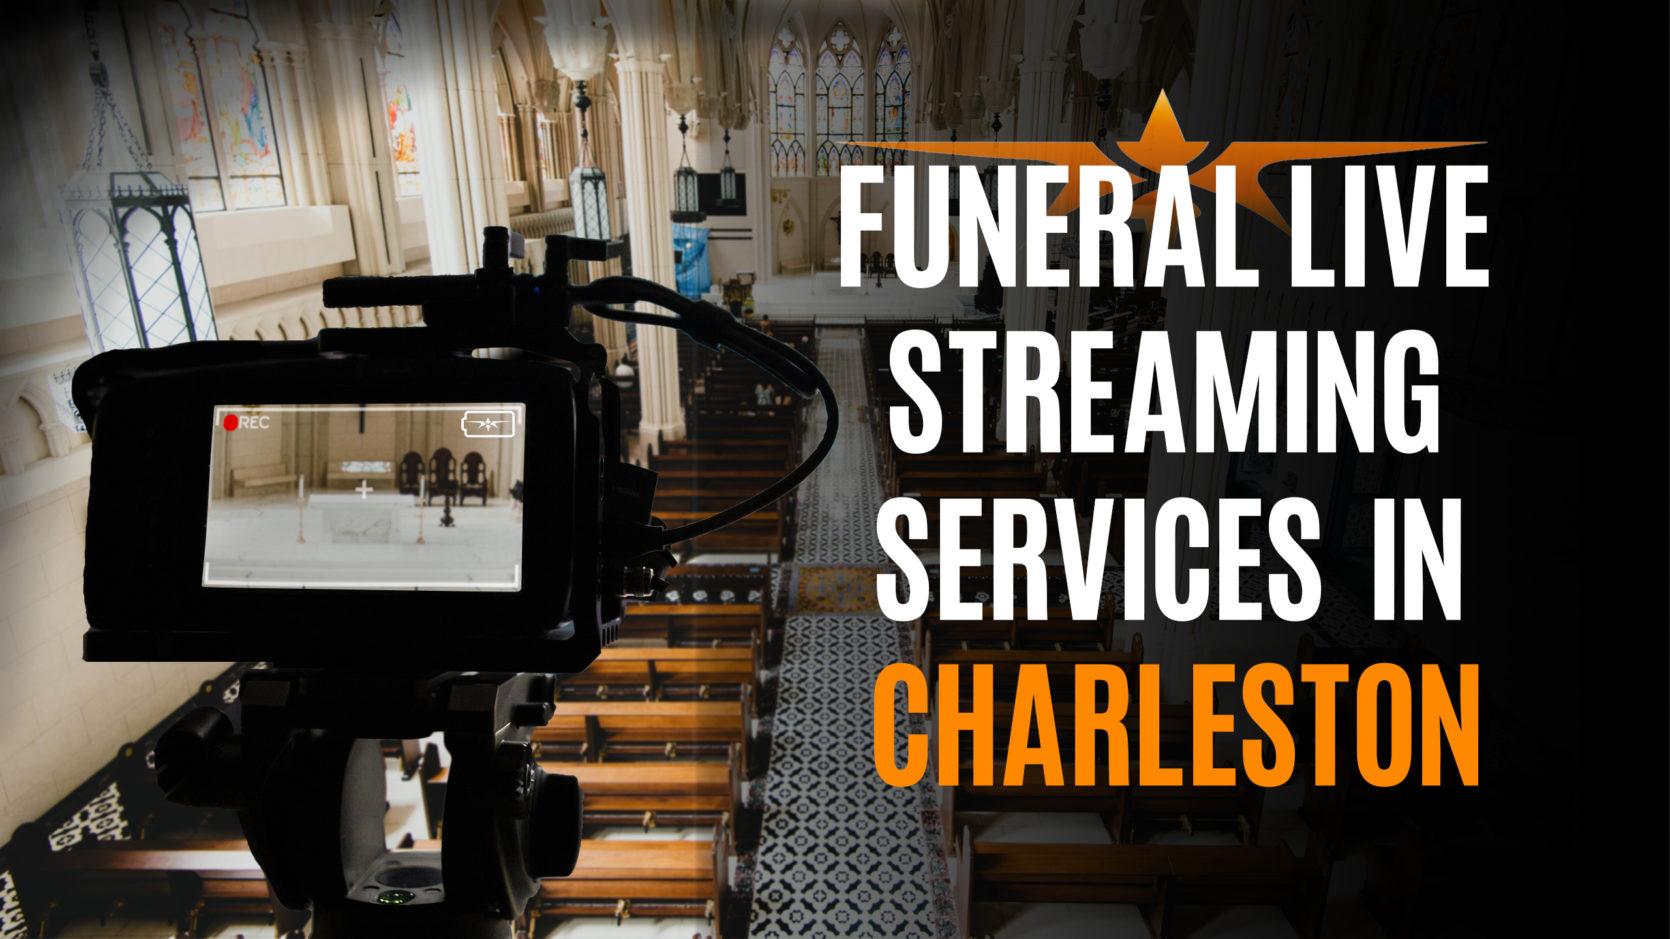 Funeral Live Streaming Services in Charleston